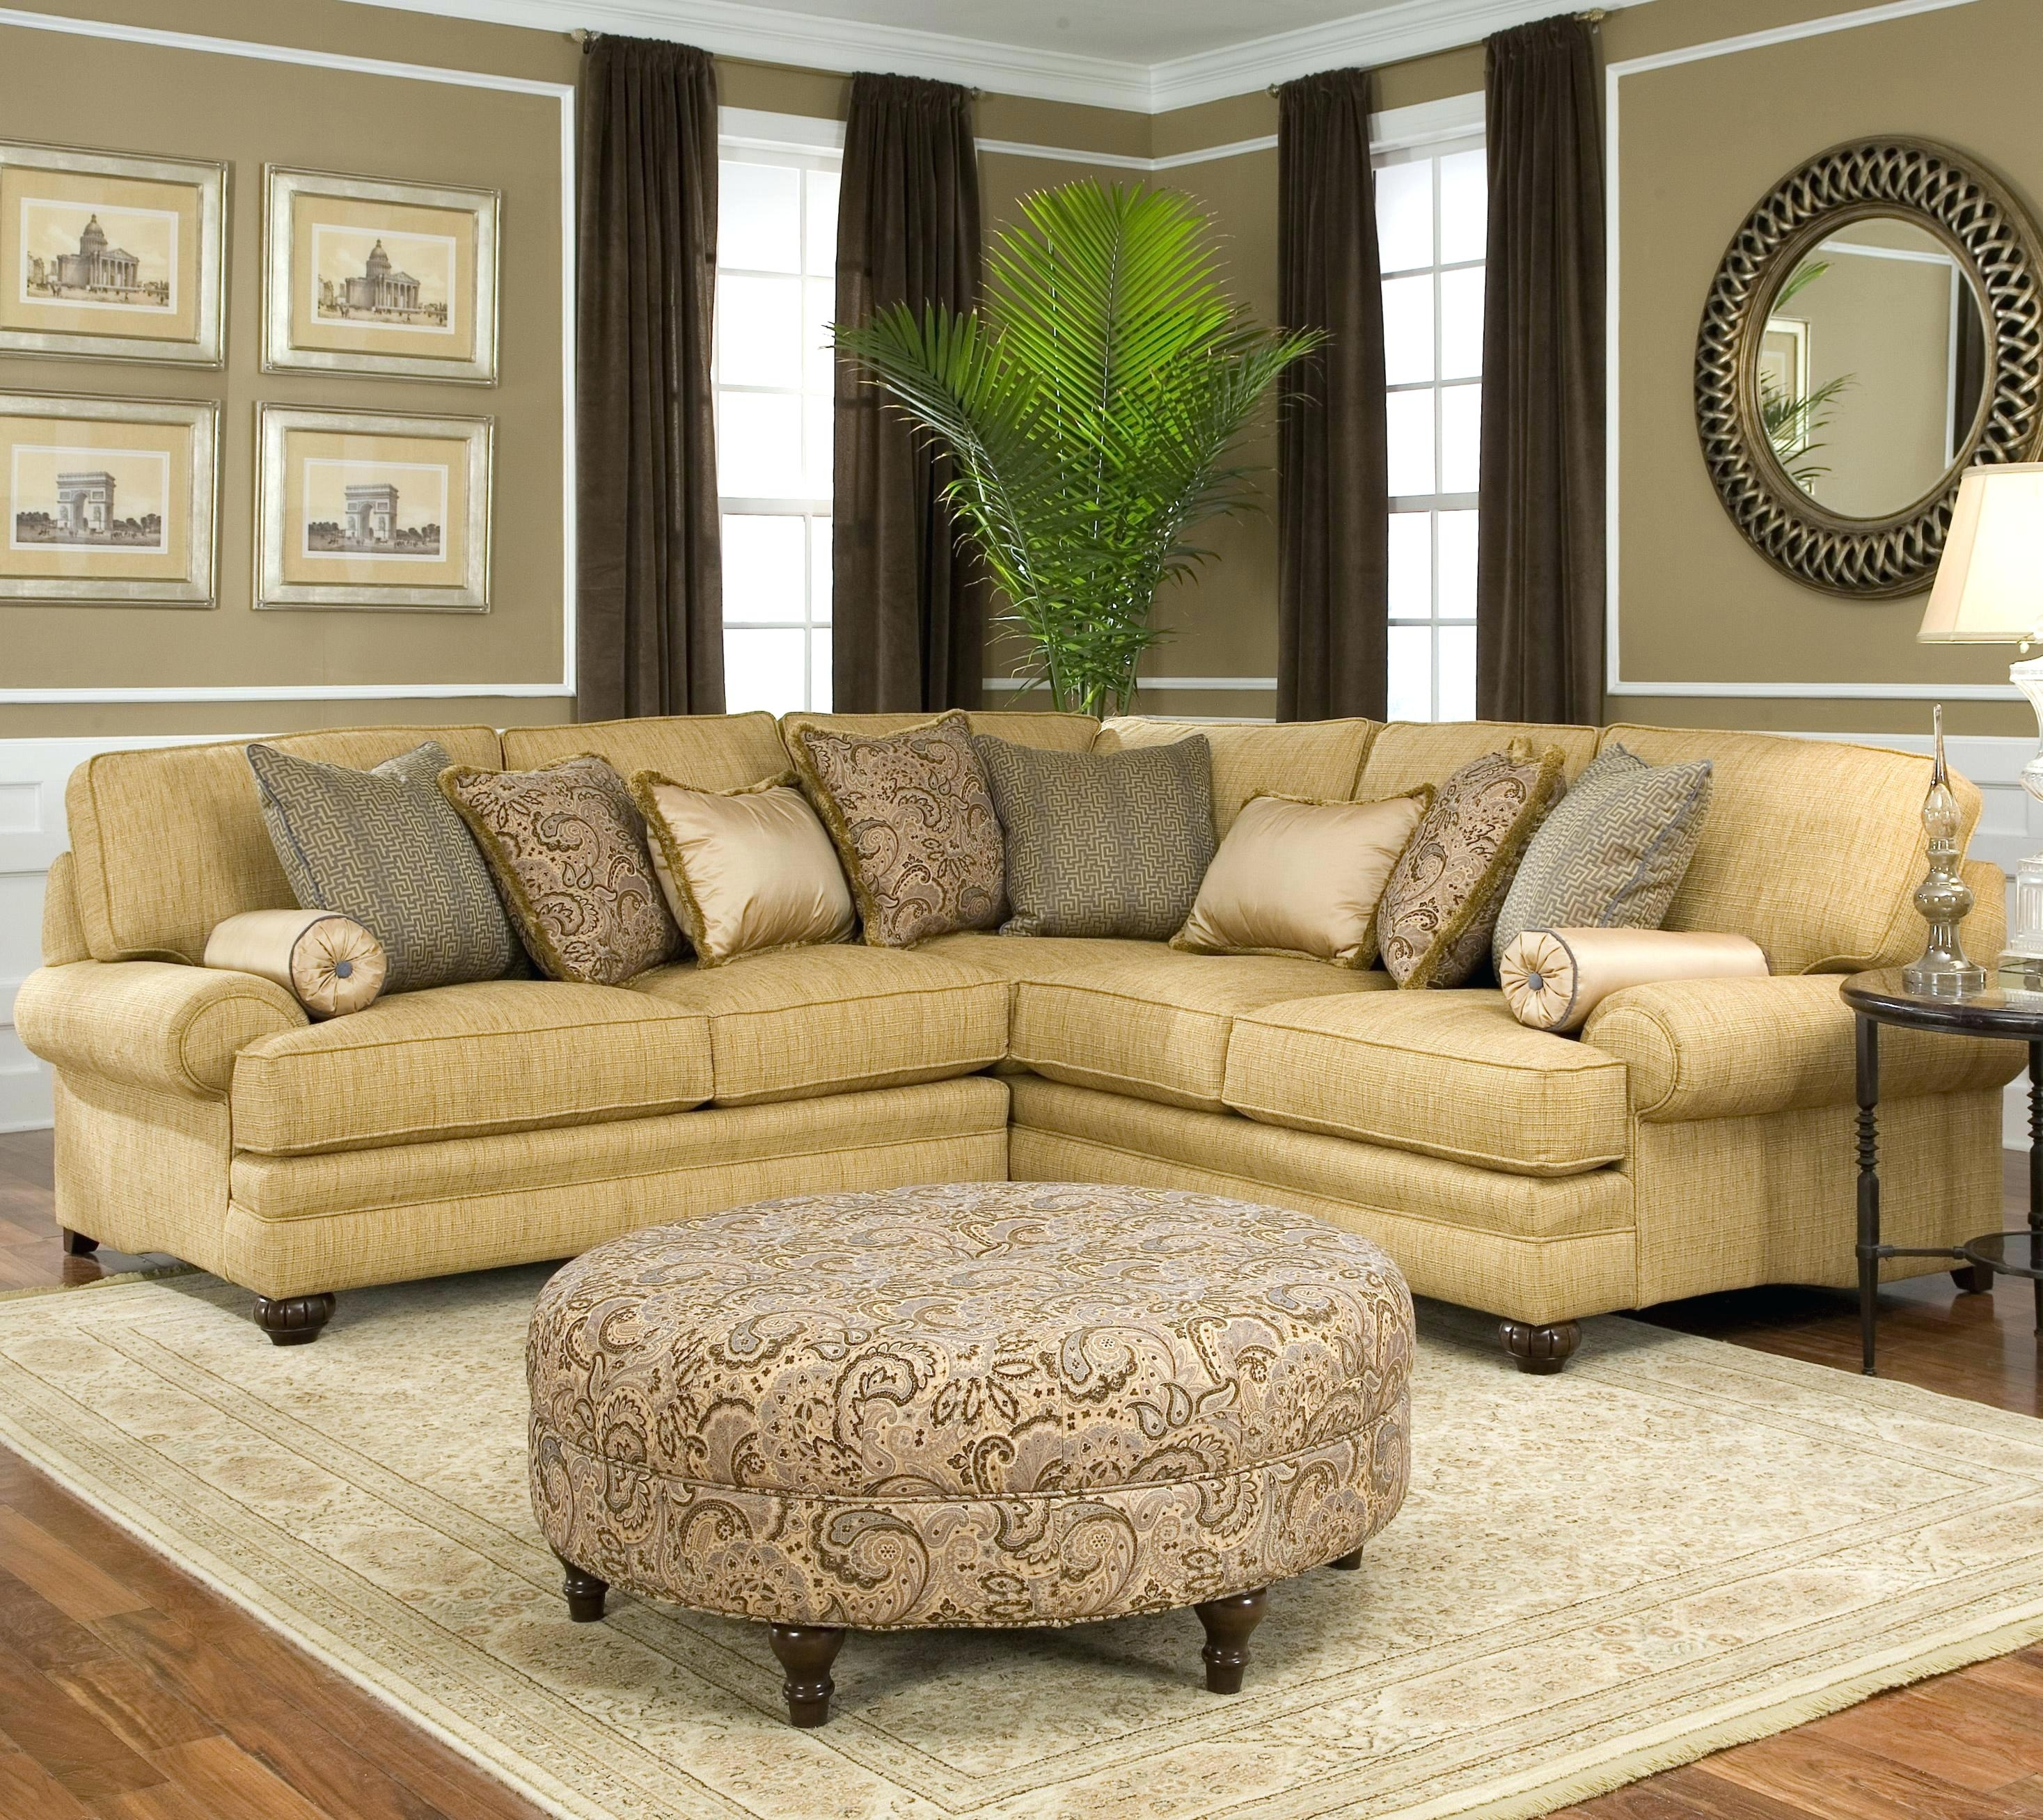 Smith Brothers Couch – Veneziacalcioa5 with Michigan Sectional Sofas (Image 7 of 10)